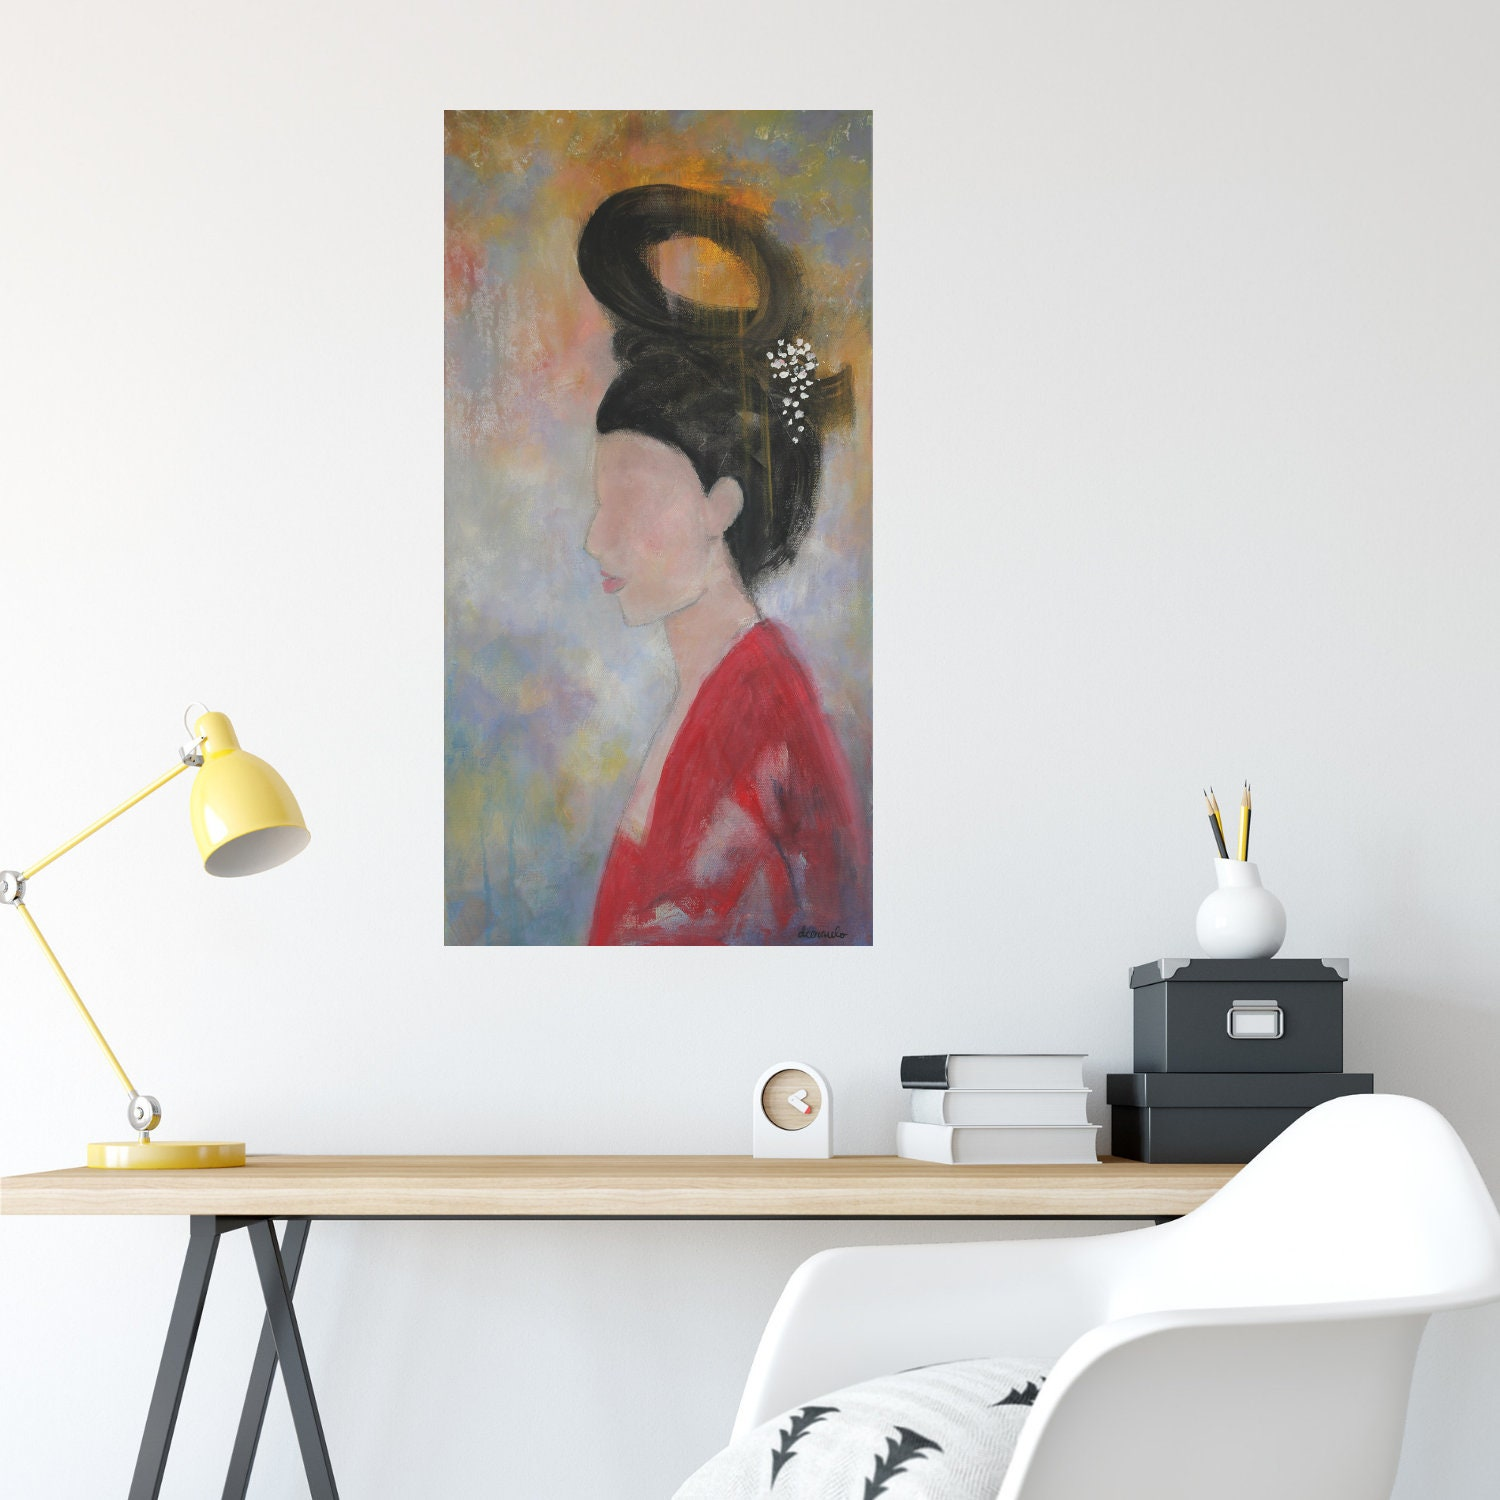 Narrow wall art on canvas original painting abstract portrait female portrait 12x24 original art modern elegant sumiko by donna ceraulo